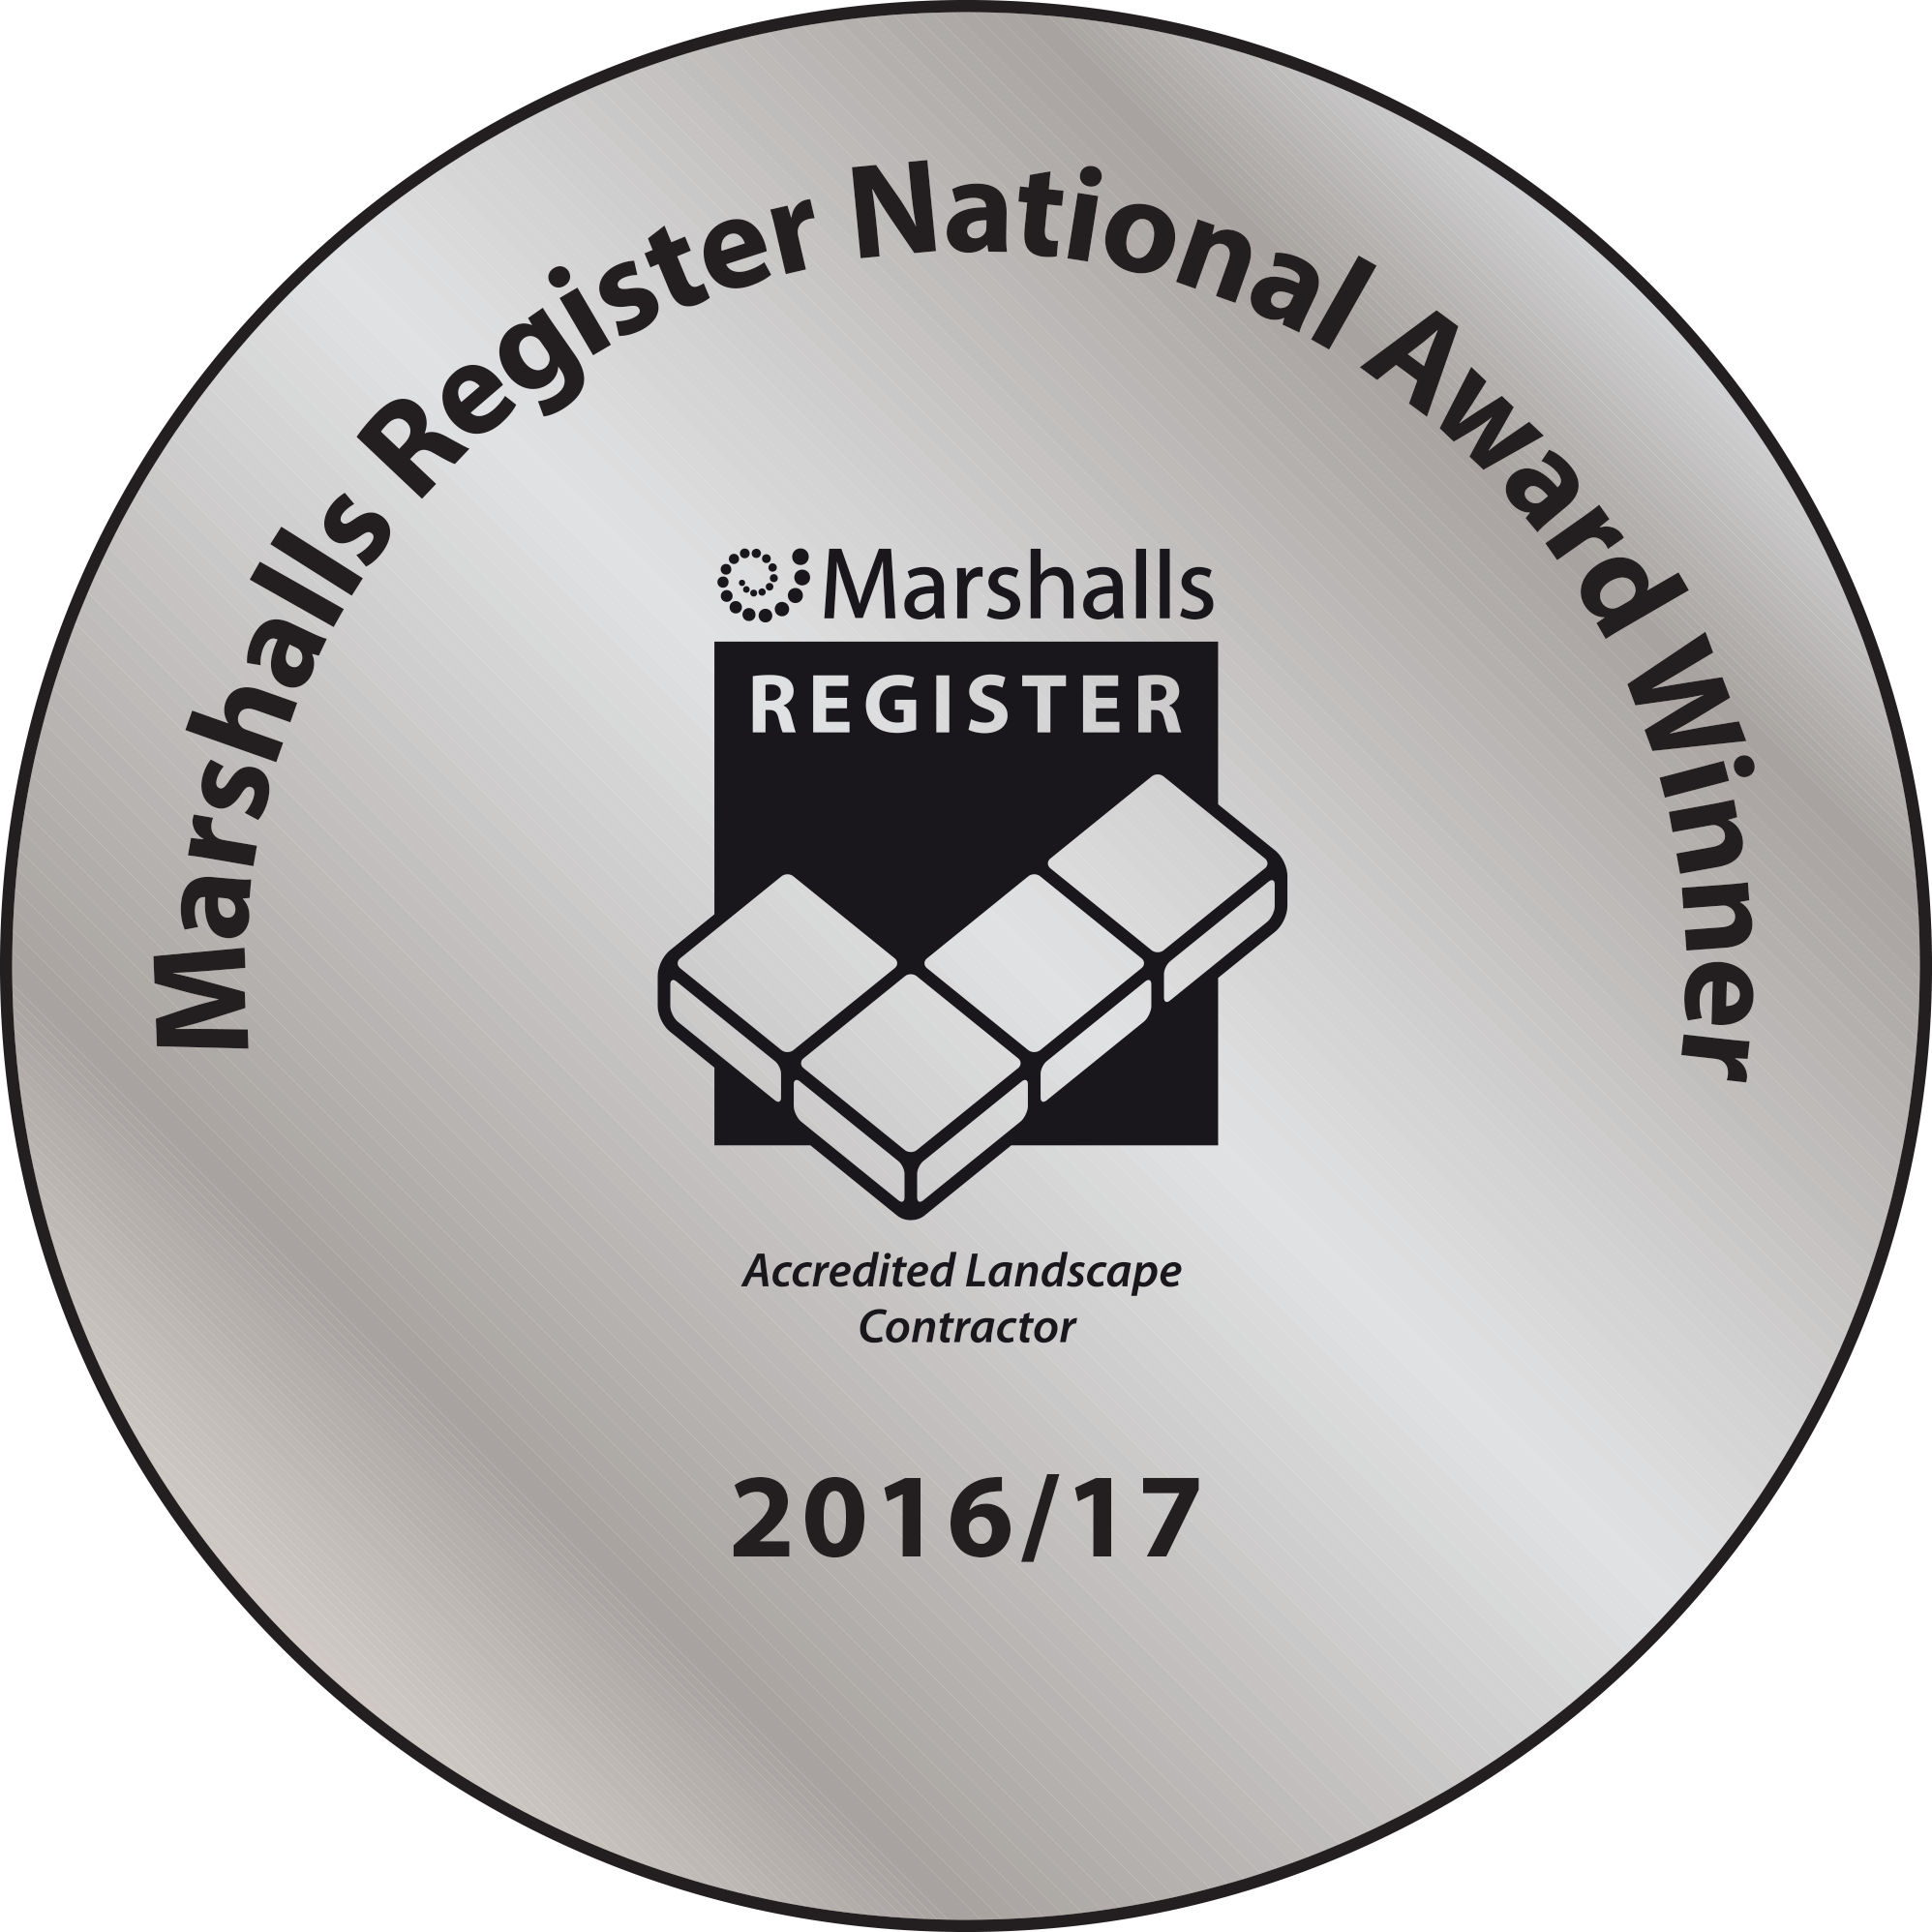 Award Medal - National Award Winner 2016-17